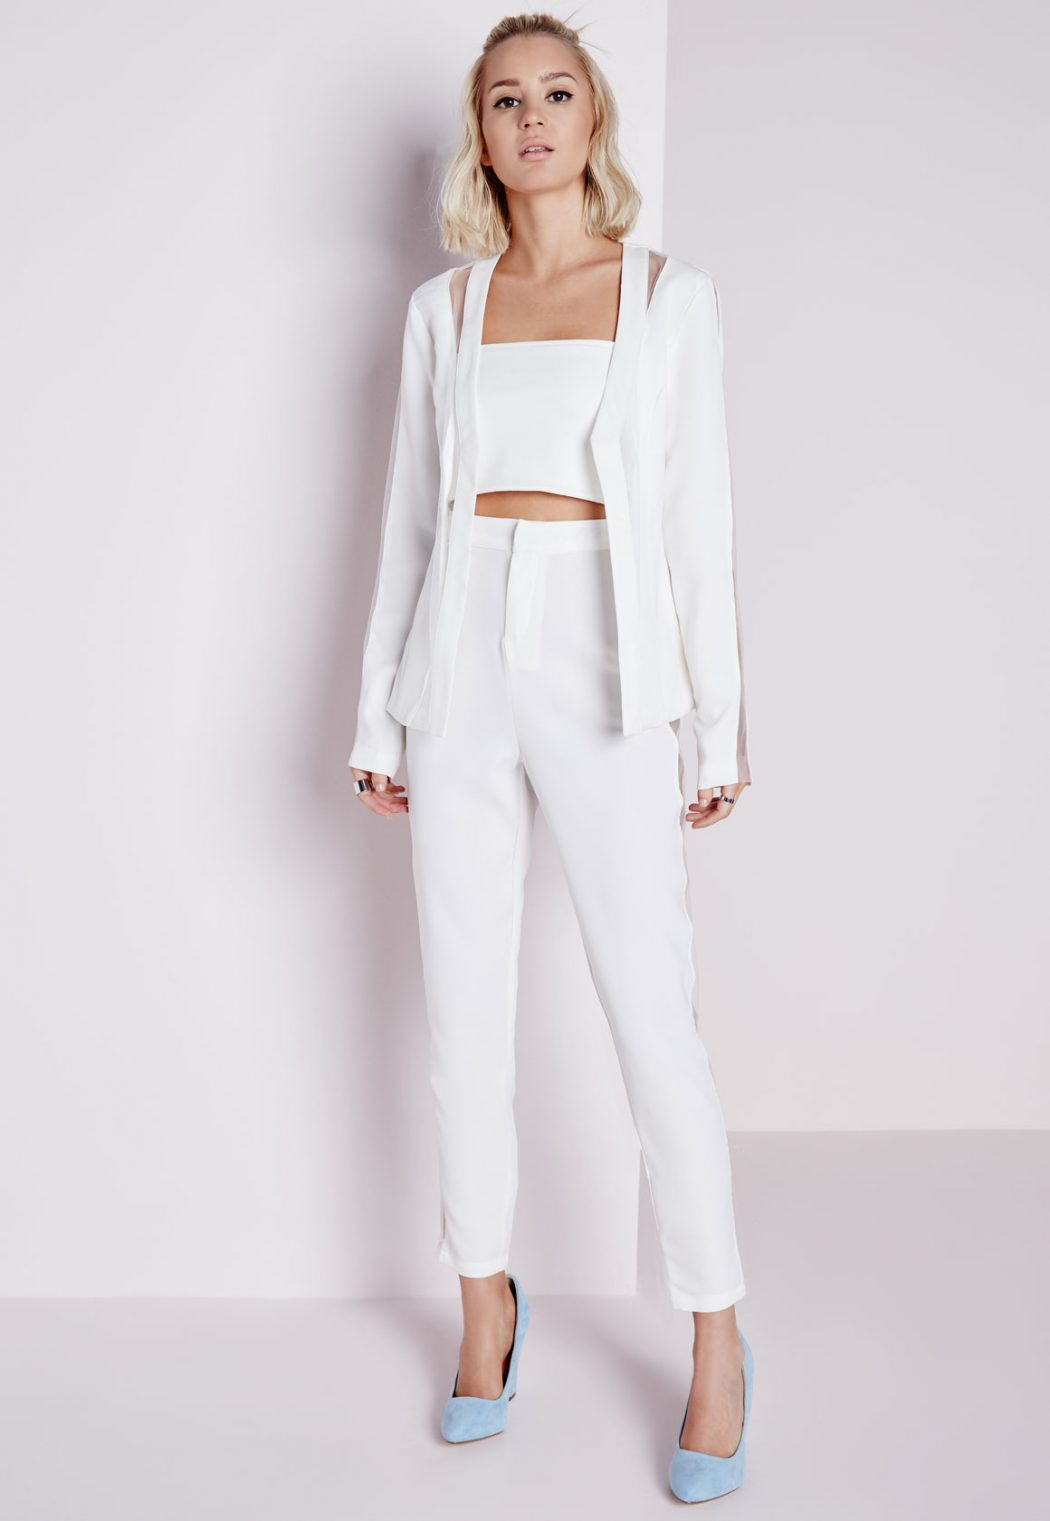 White-Trousers1 20+ White Party Outfits Ideas for Women in 2018